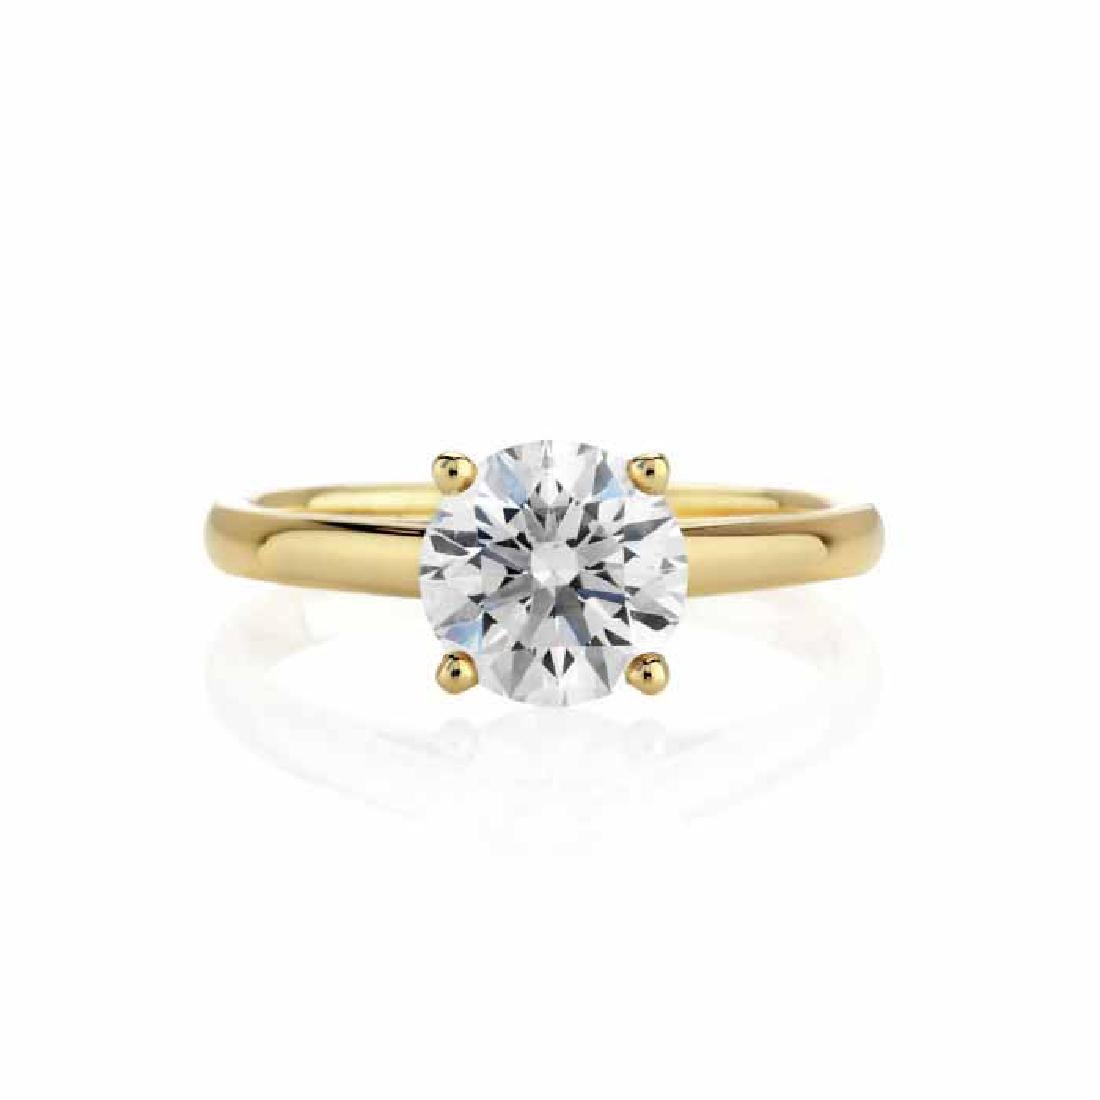 CERTIFIED 1.09 CTW E/SI1 ROUND DIAMOND SOLITAIRE RING I